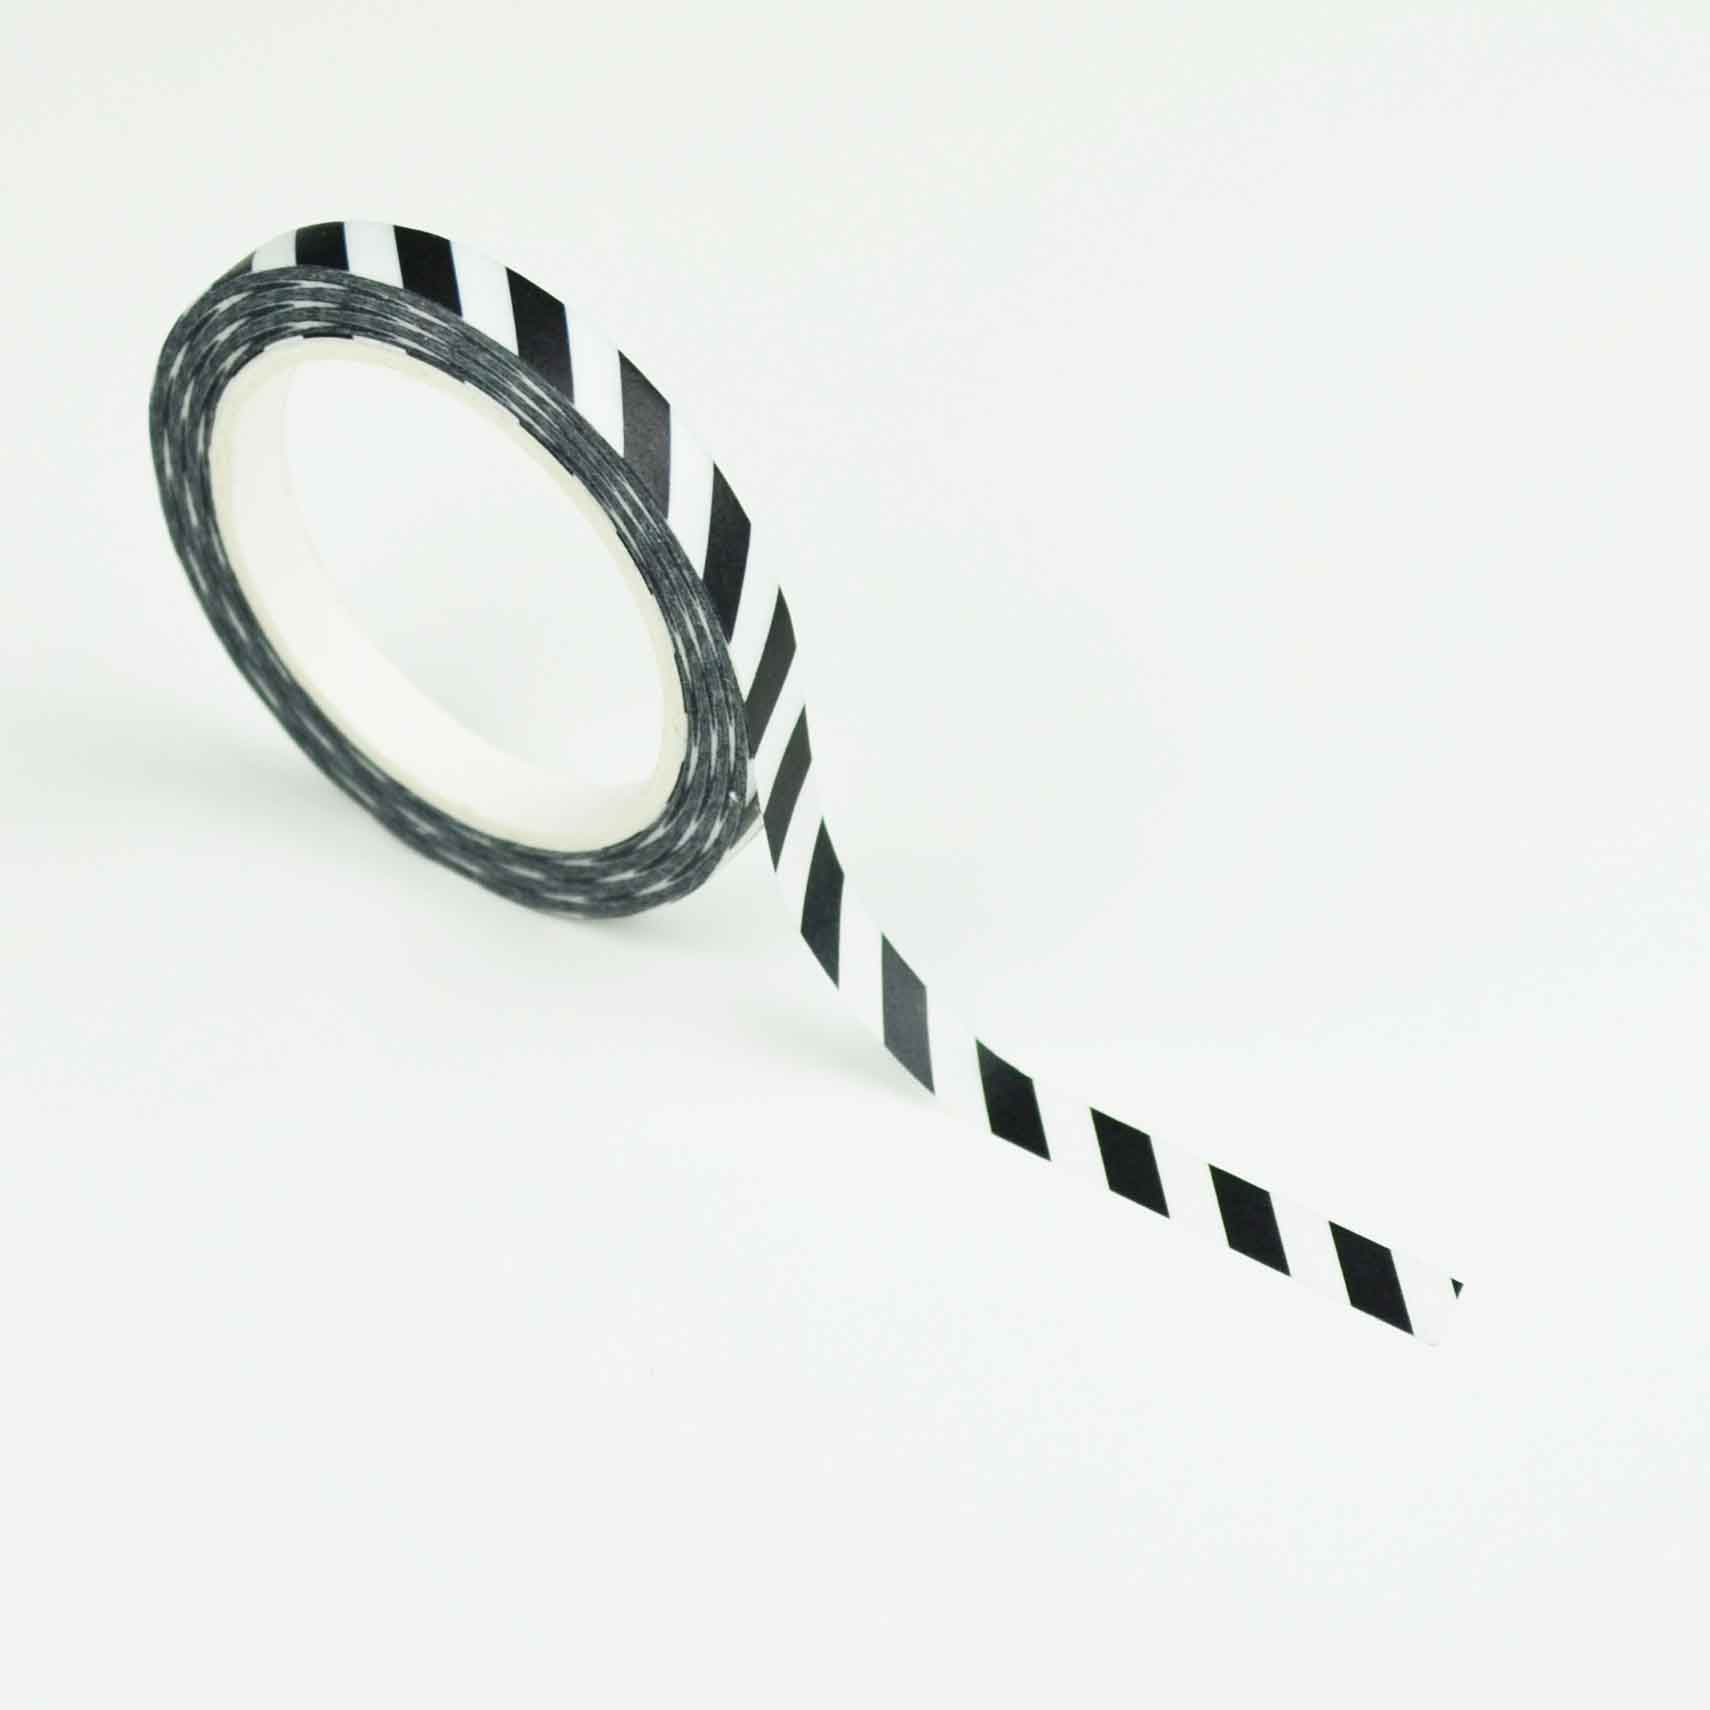 Smalle washi tape: Black stripes